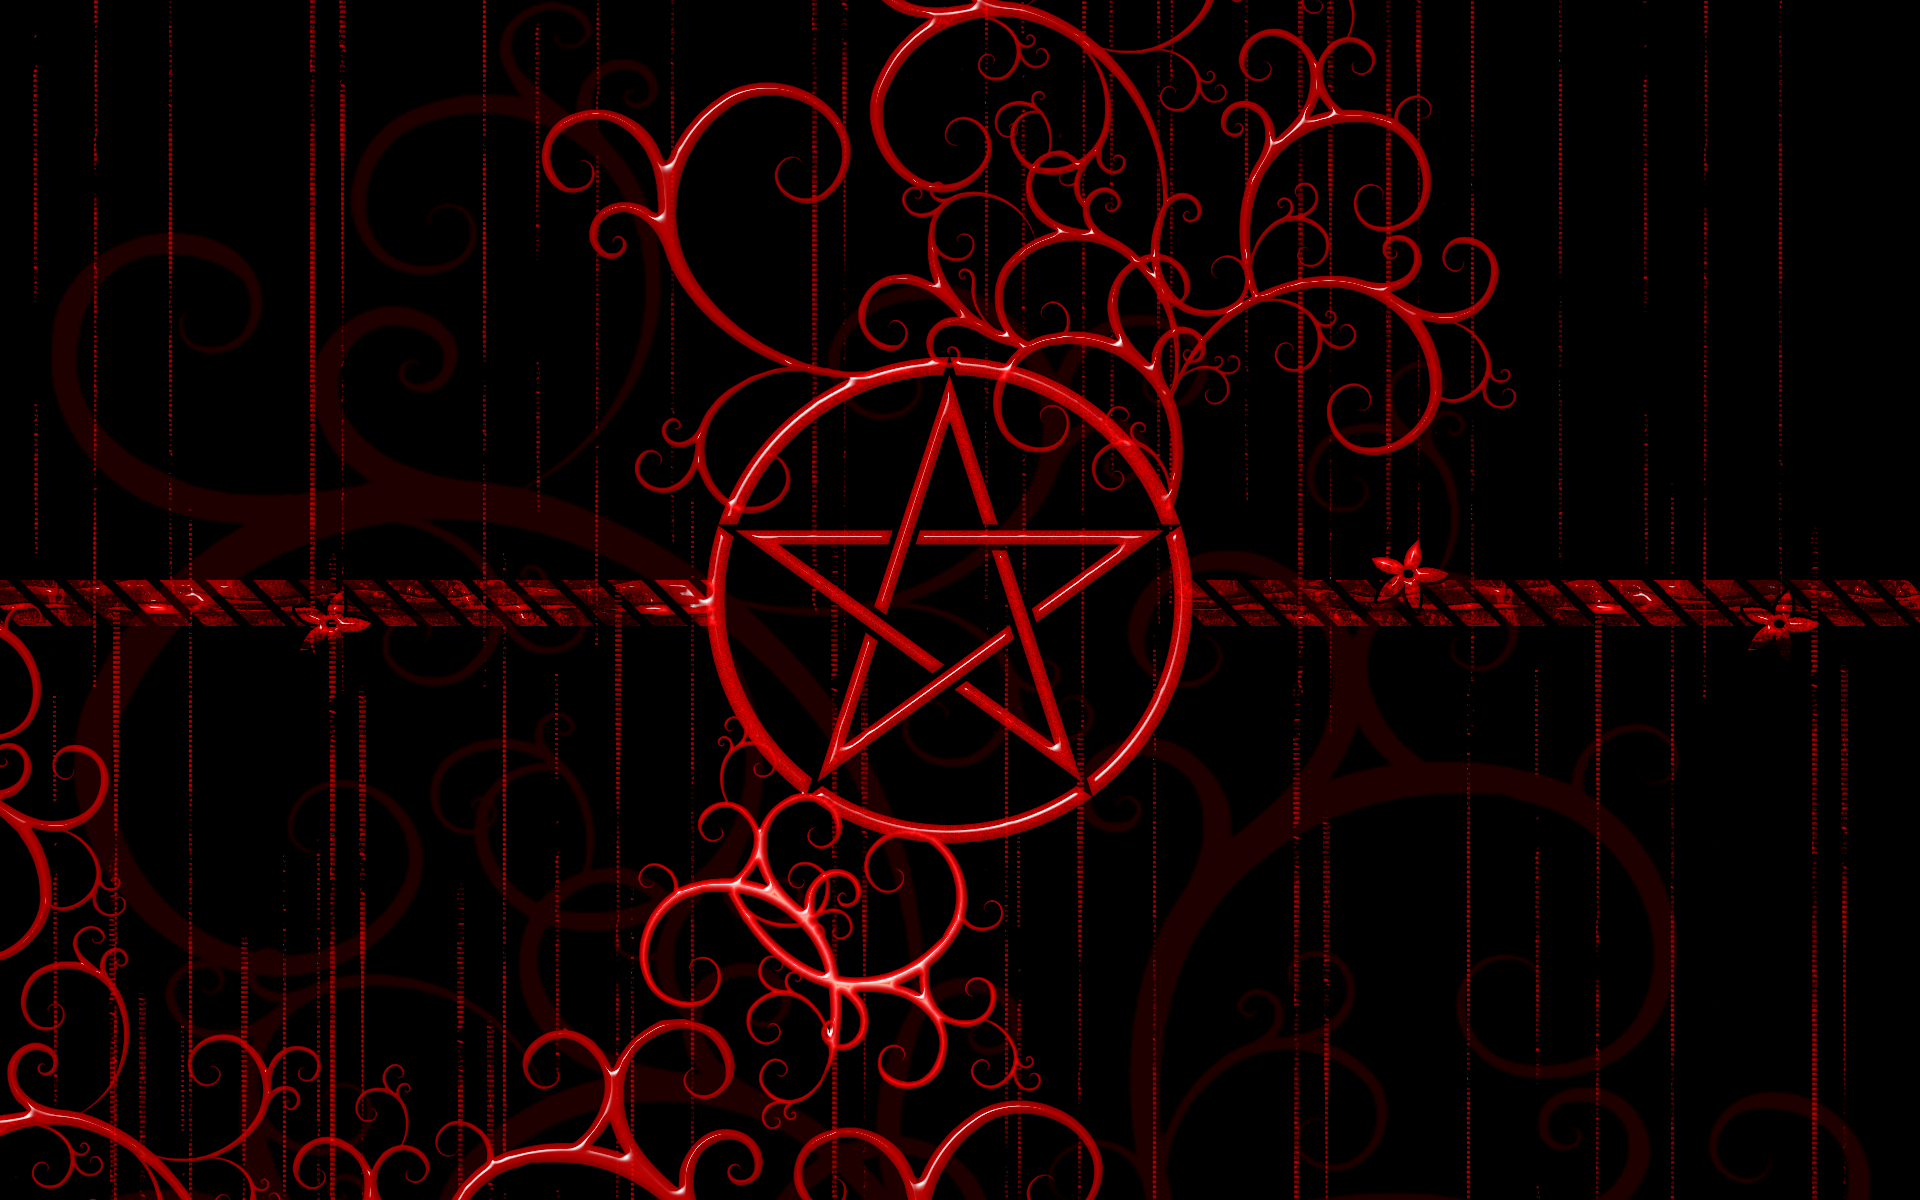 Occult Computer Wallpapers Desktop Backgrounds 1920x1200 ID 1920x1200